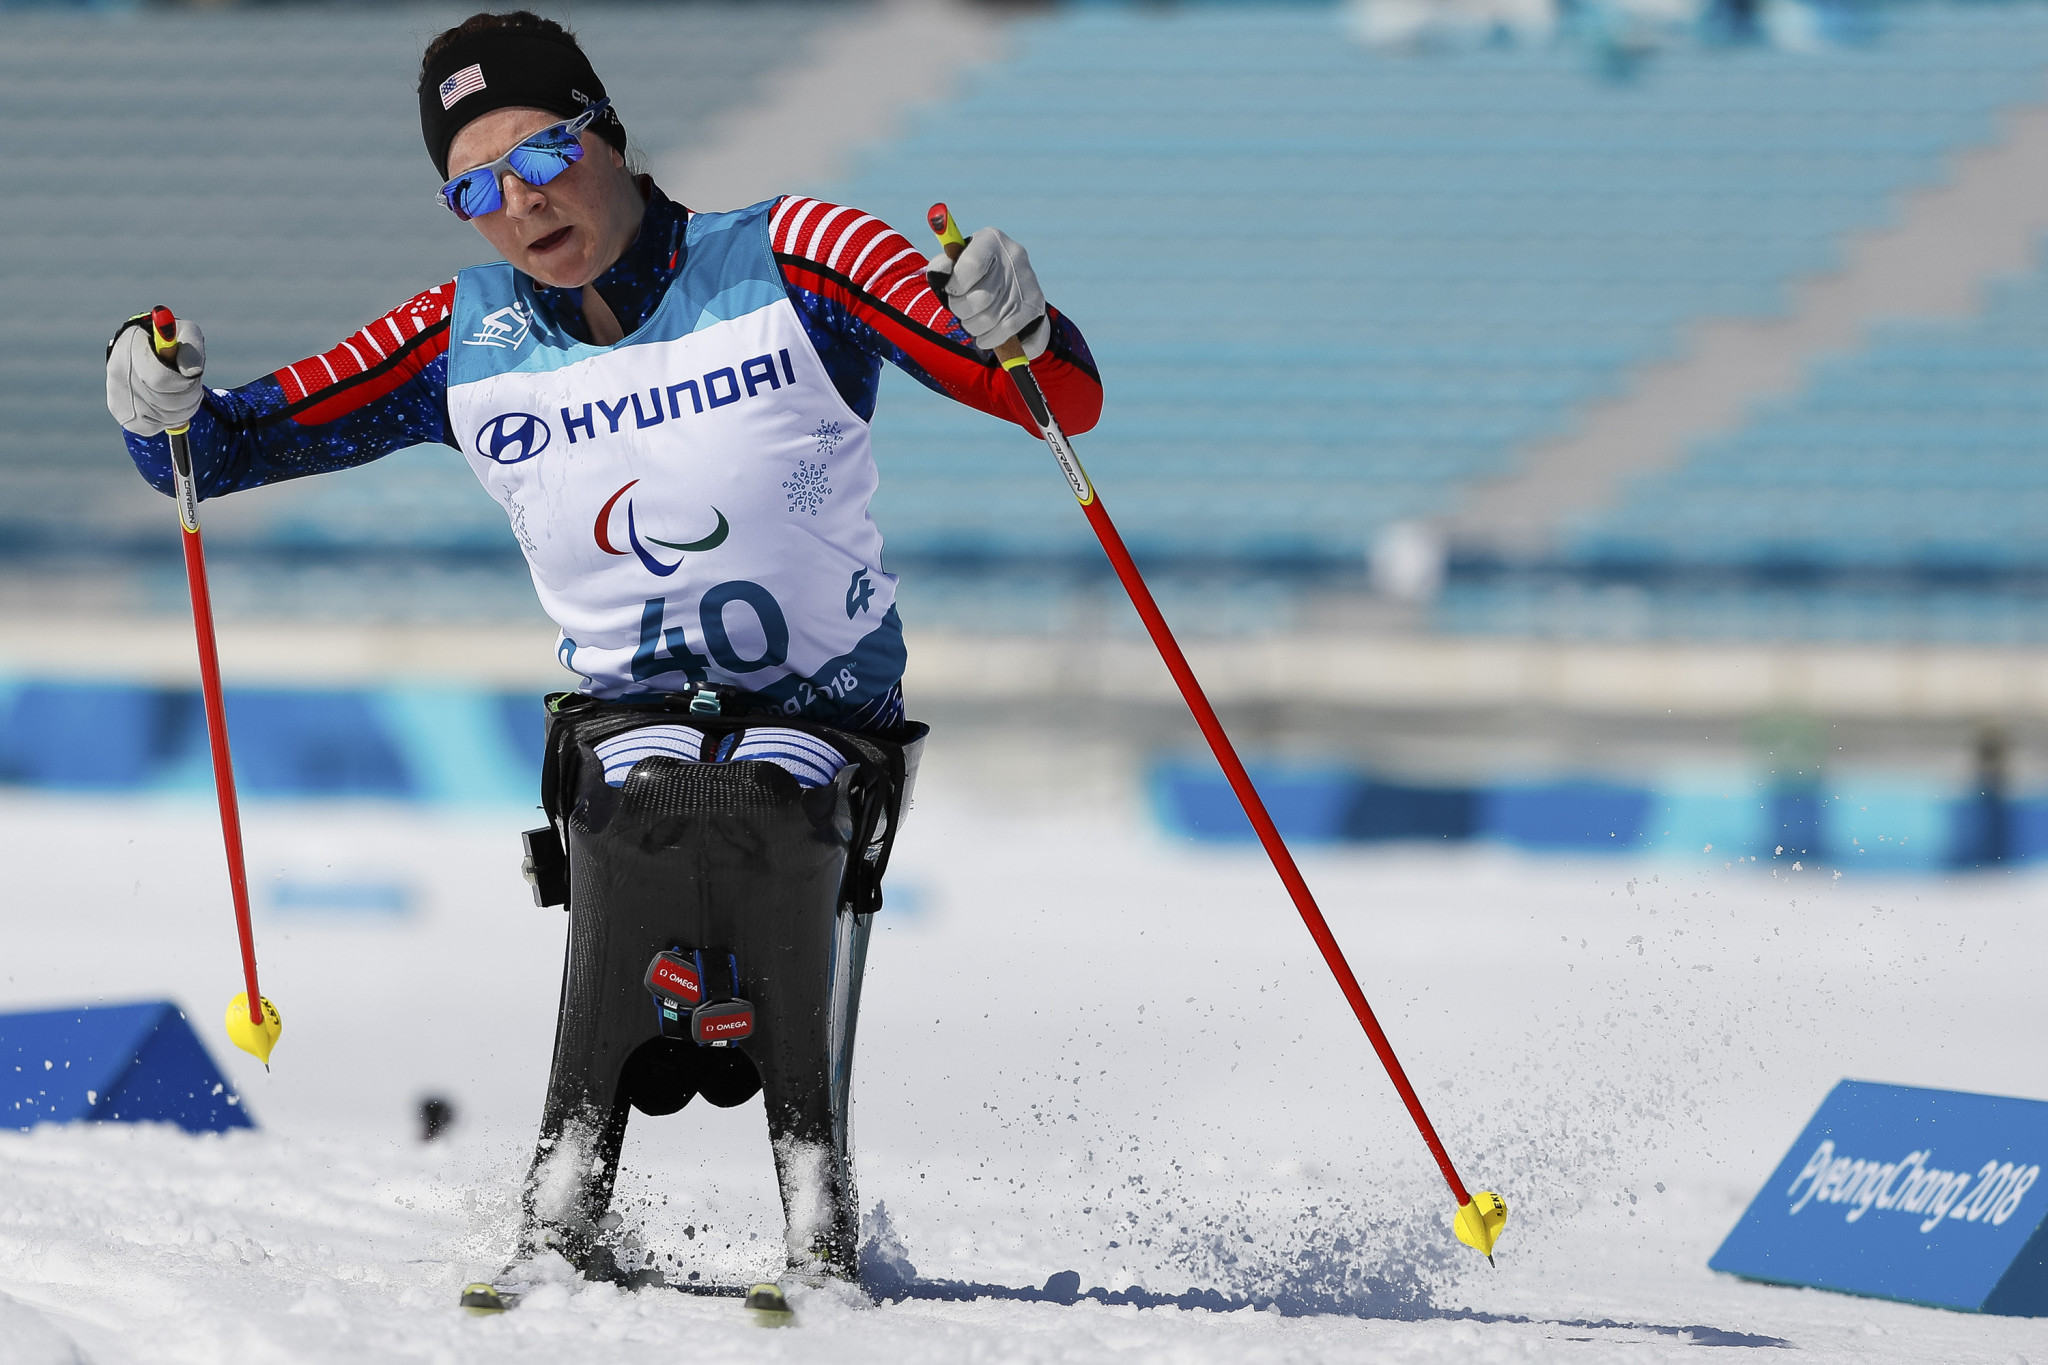 Kendall Gretsch is one of the seven Para-Nordic skiers selected to the American national team ©Getty Images